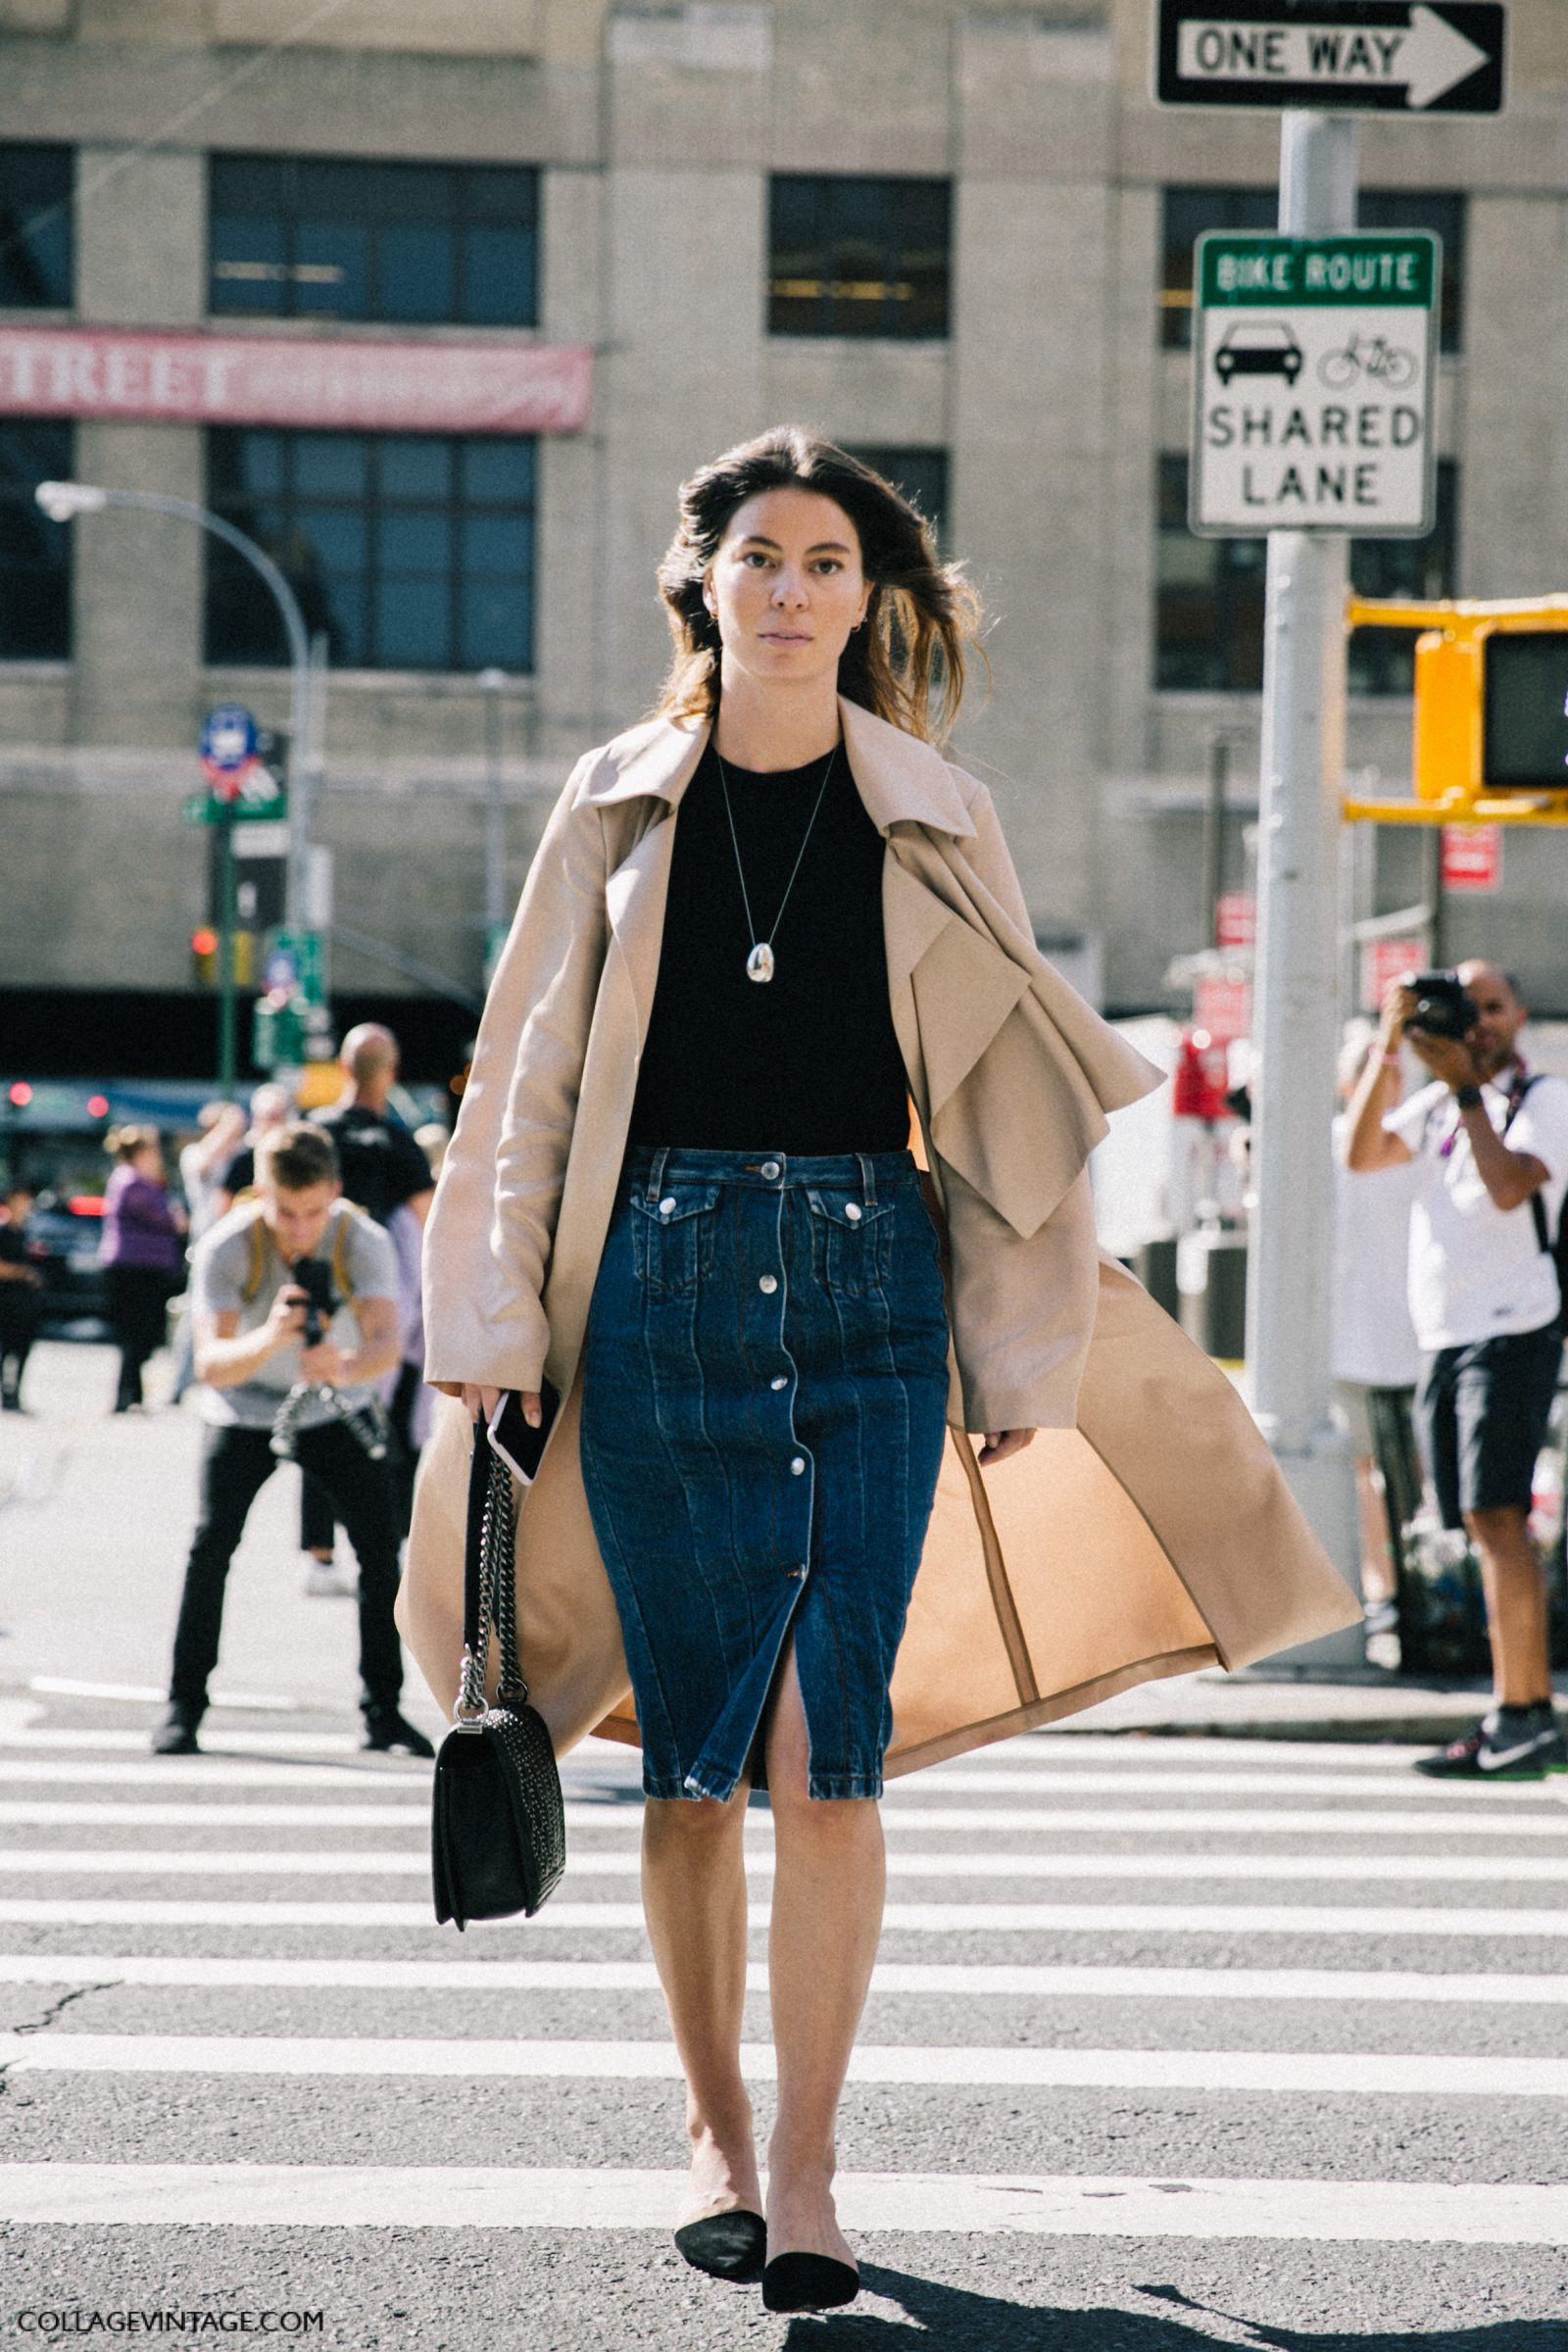 nyfw-new_york_fashion_week_ss17-street_style-outfits-collage_vintage-vintage-phillip_lim-the-row-proenza_schouler-rossie_aussolin-353